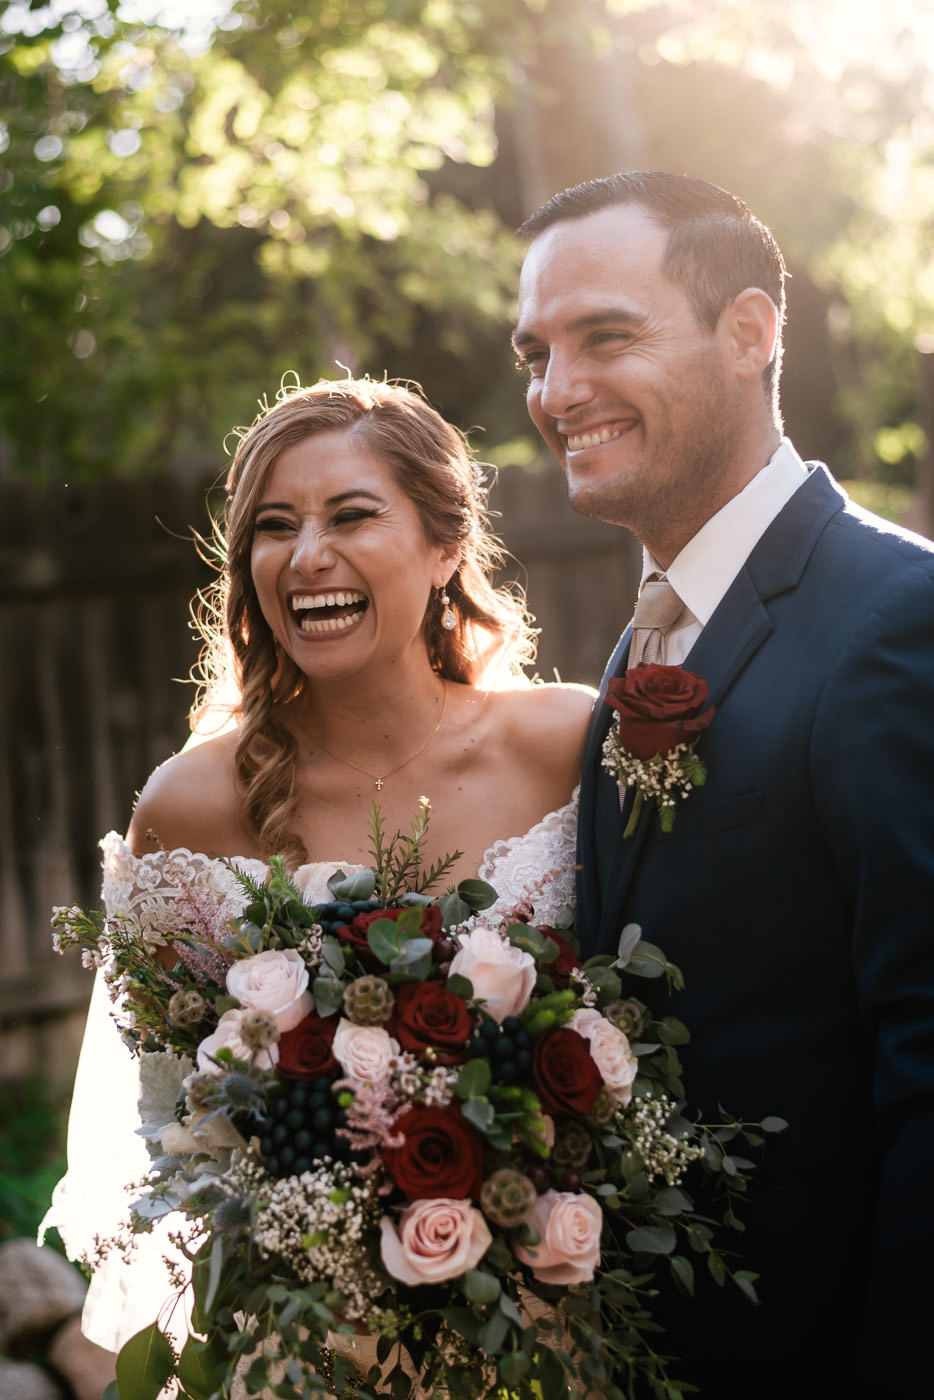 Couple laughs and has a blast while doing their wedding photos.